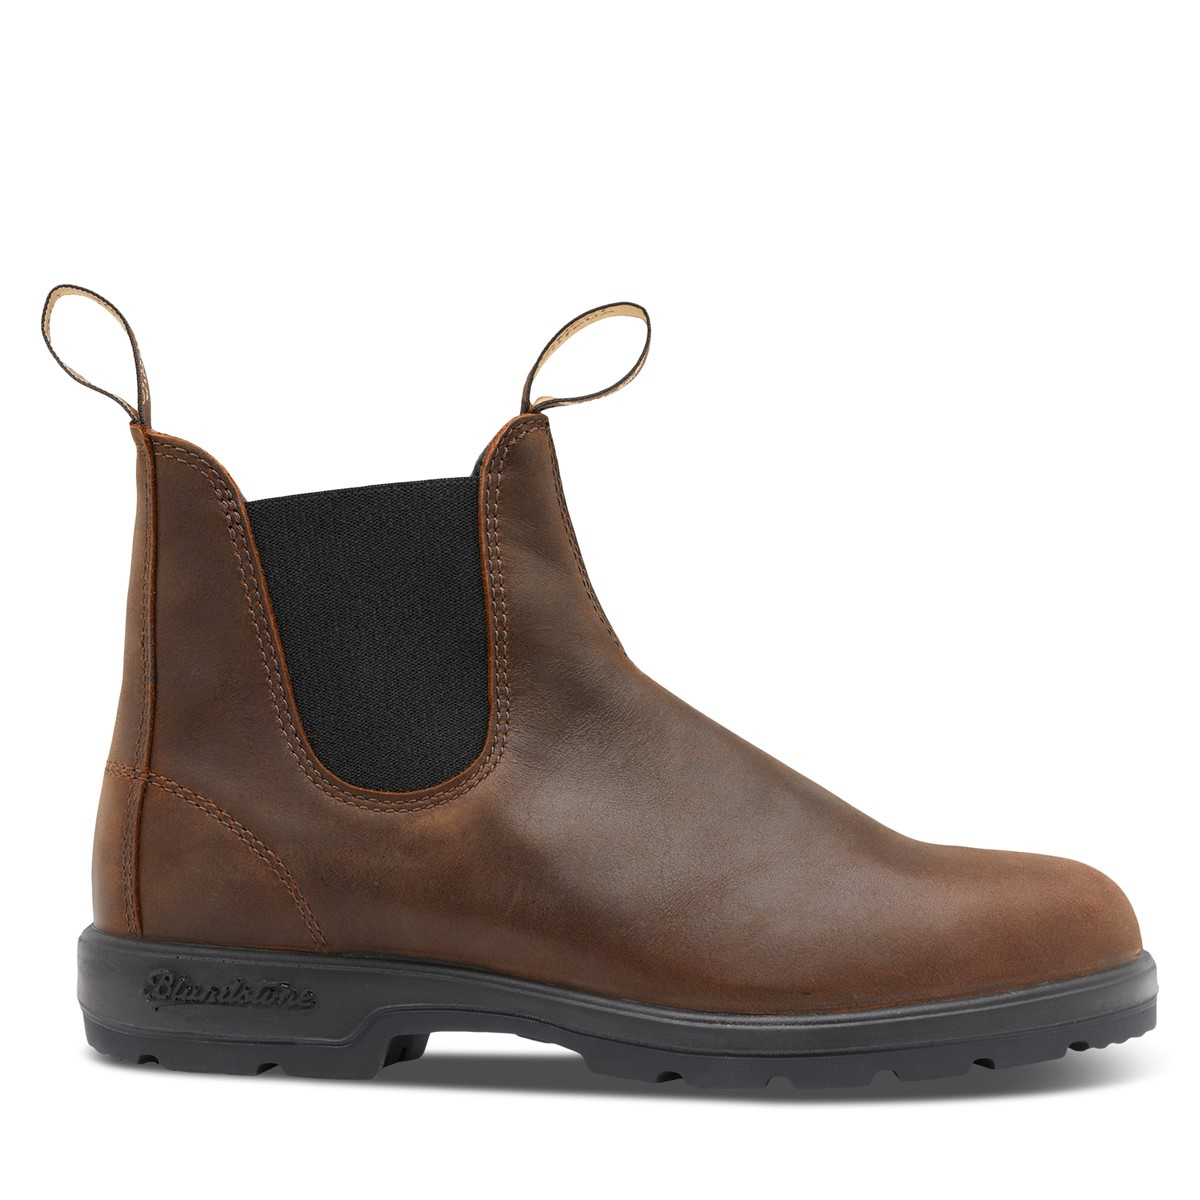 1609 Chelsea Boots in Antique Brown